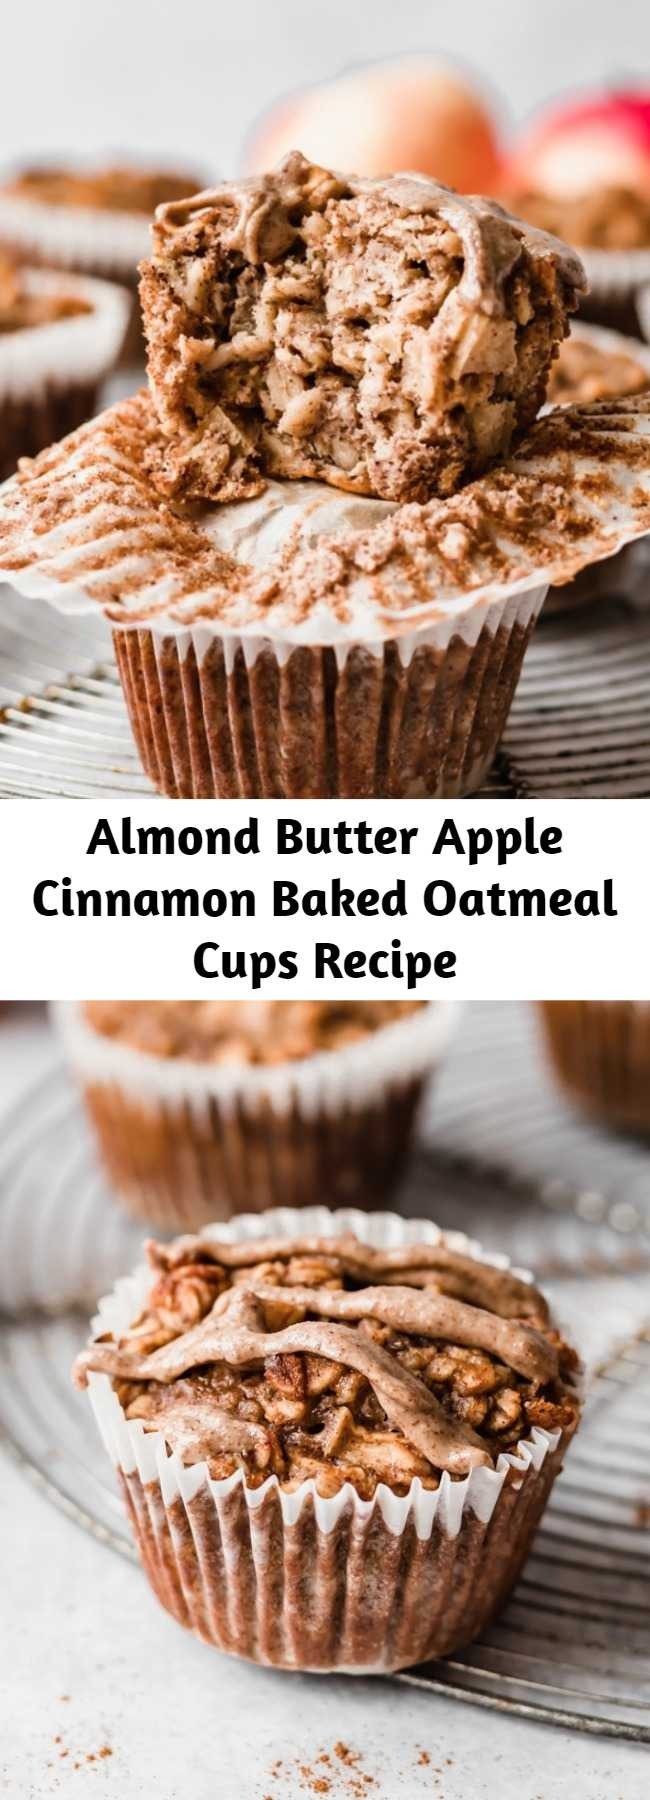 Almond Butter Apple Cinnamon Baked Oatmeal Cups Recipe - Easy apple cinnamon baked oatmeal cups made with applesauce, fresh apples, oats, maple syrup and almond butter for a boost of protein + flavor. Freezer-friendly, great for kids or meal prep! #mealprep #freezerfriendly #oatmeal #oatmealcups #almondbutter #applerecipe #apples #kidfriendly #glutenfree